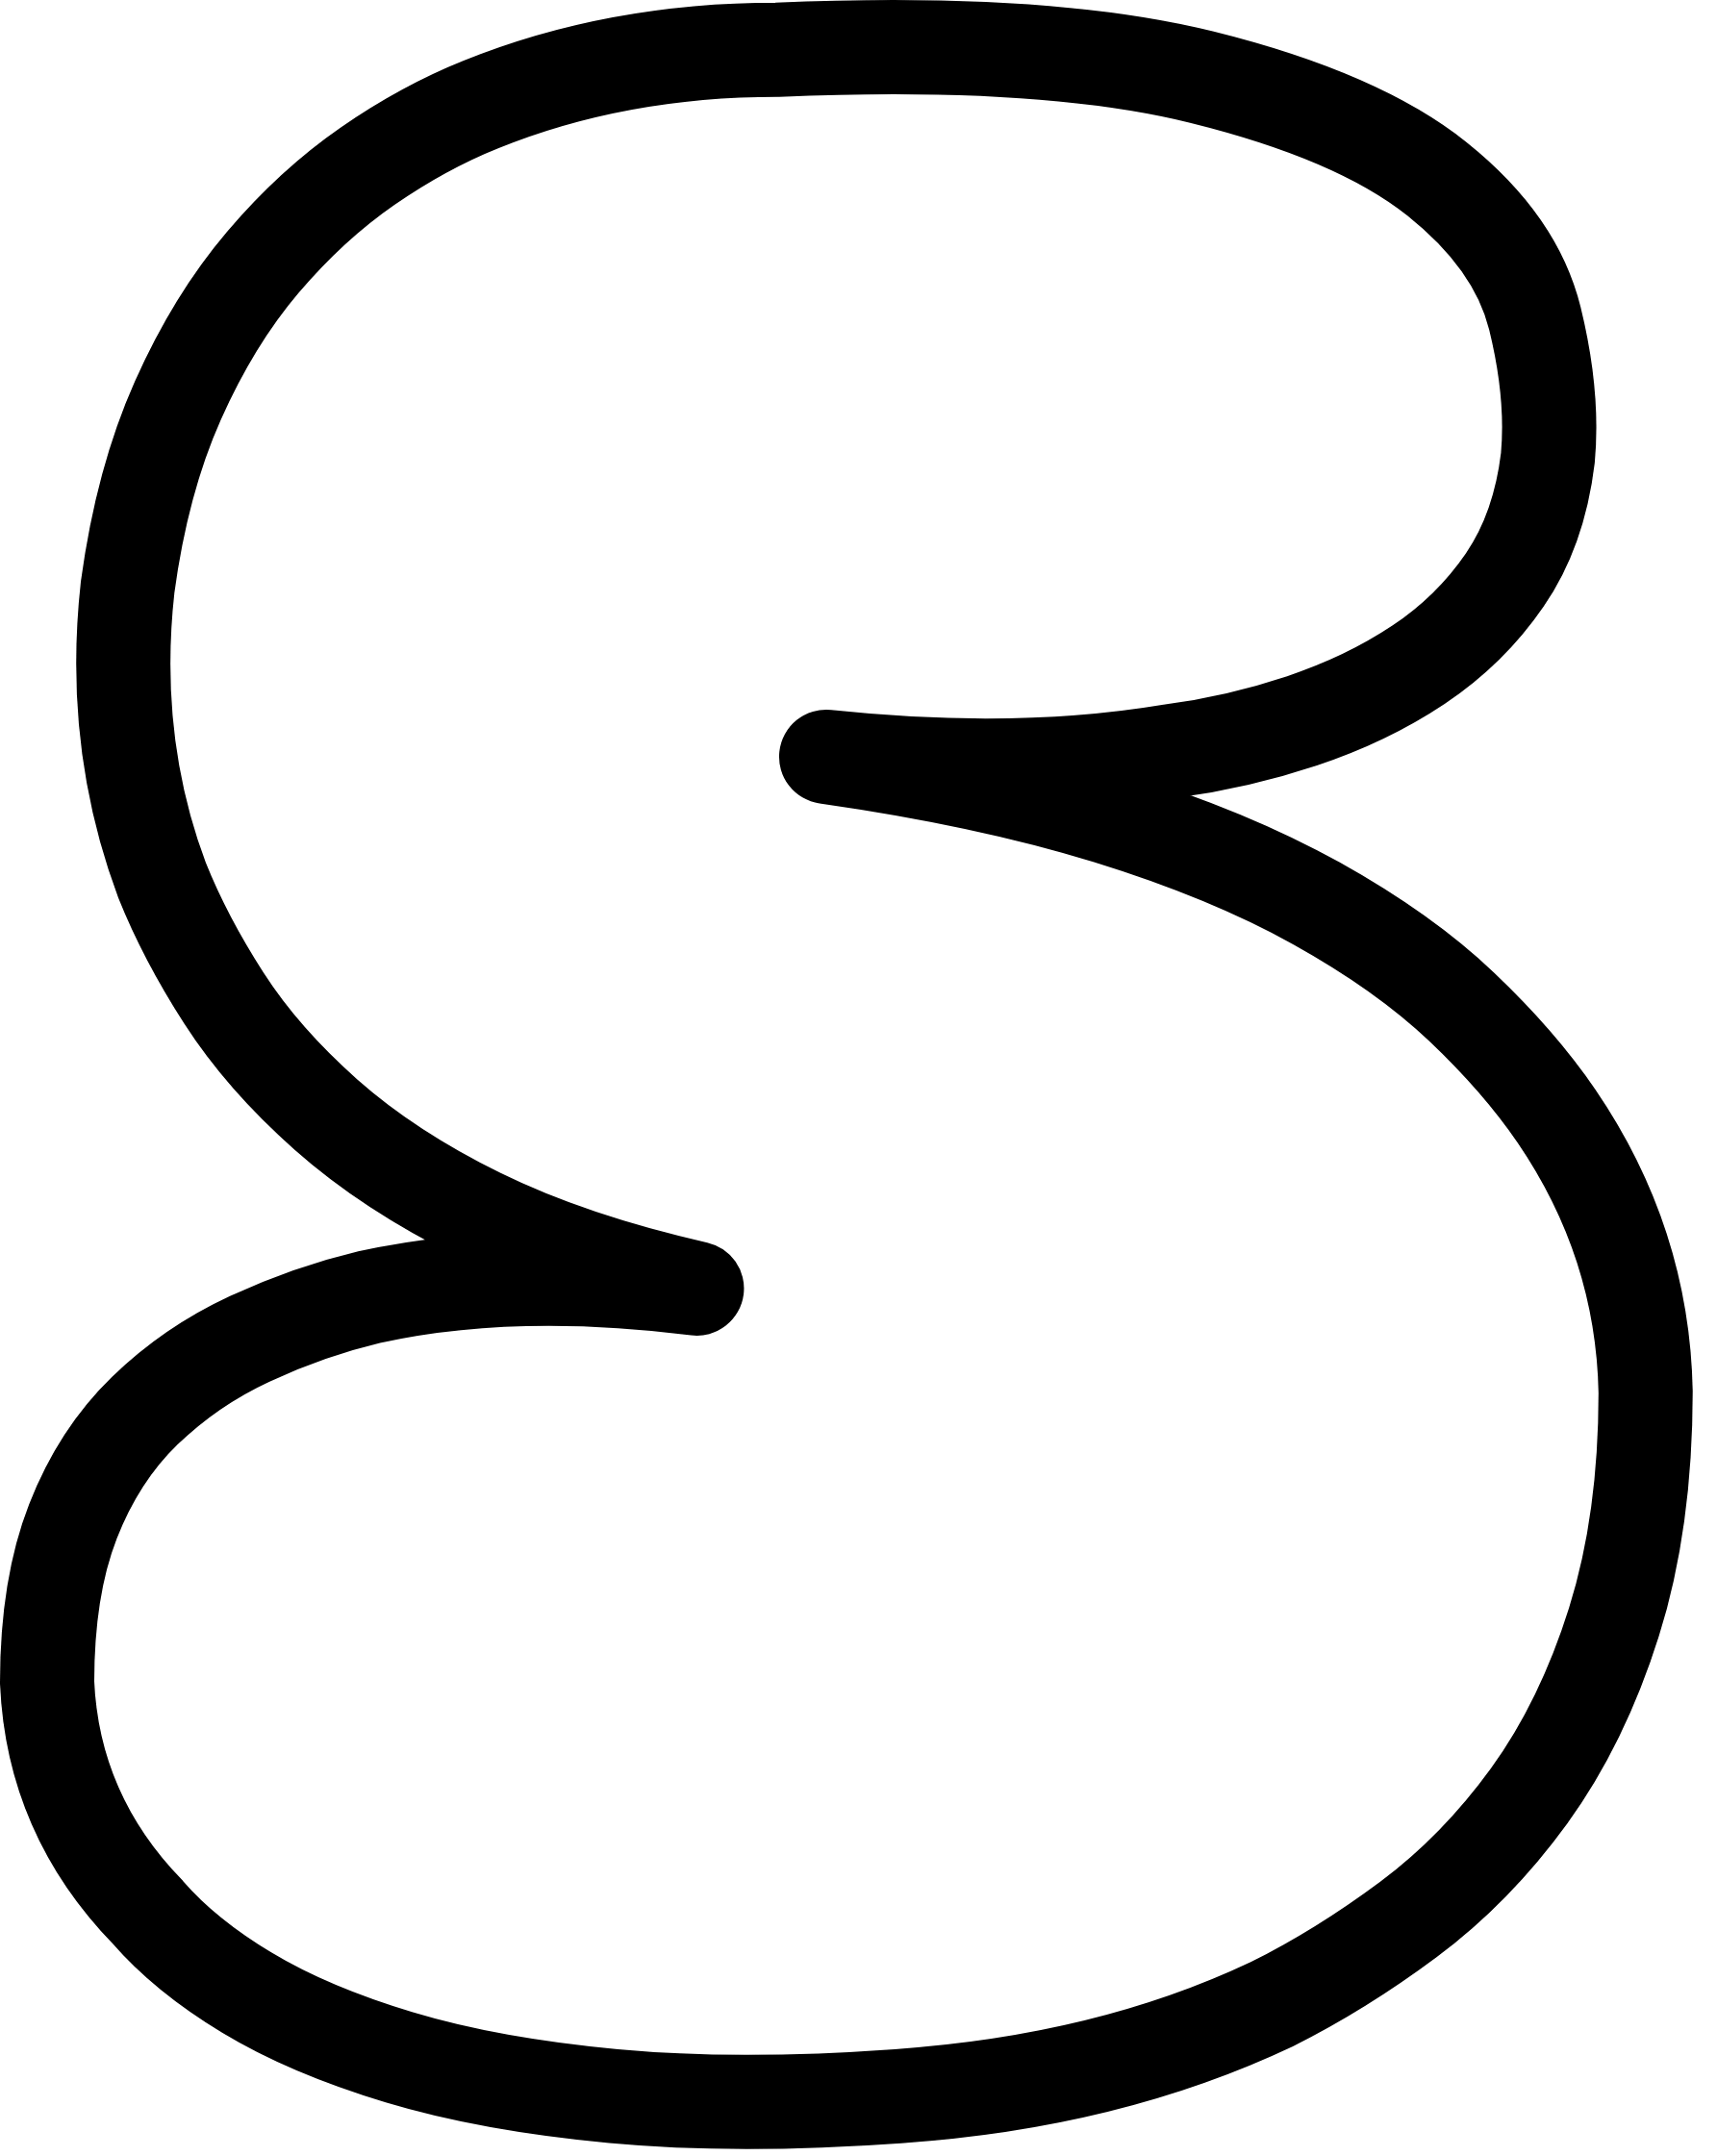 Uppercase Bubble Letter S